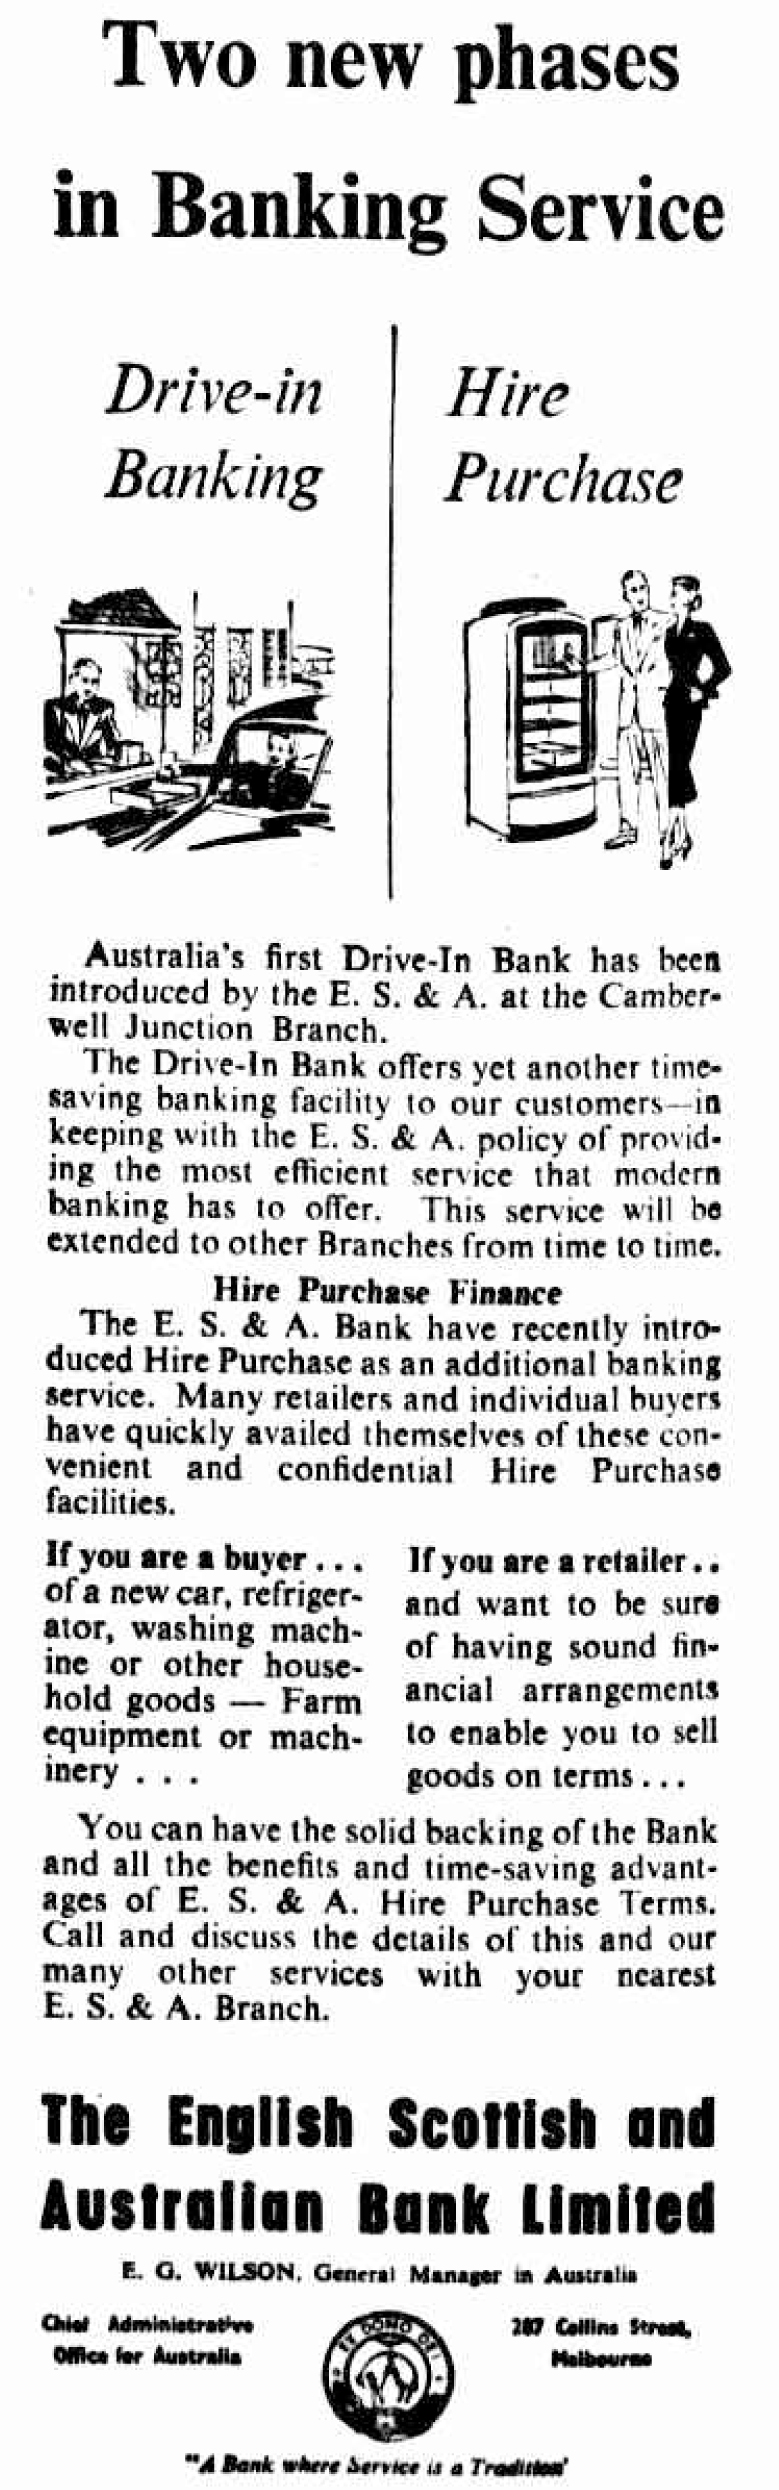 newspaper advertisment about the two new phases of banking service at ES&A Bank: drive-in banking and hire purchase